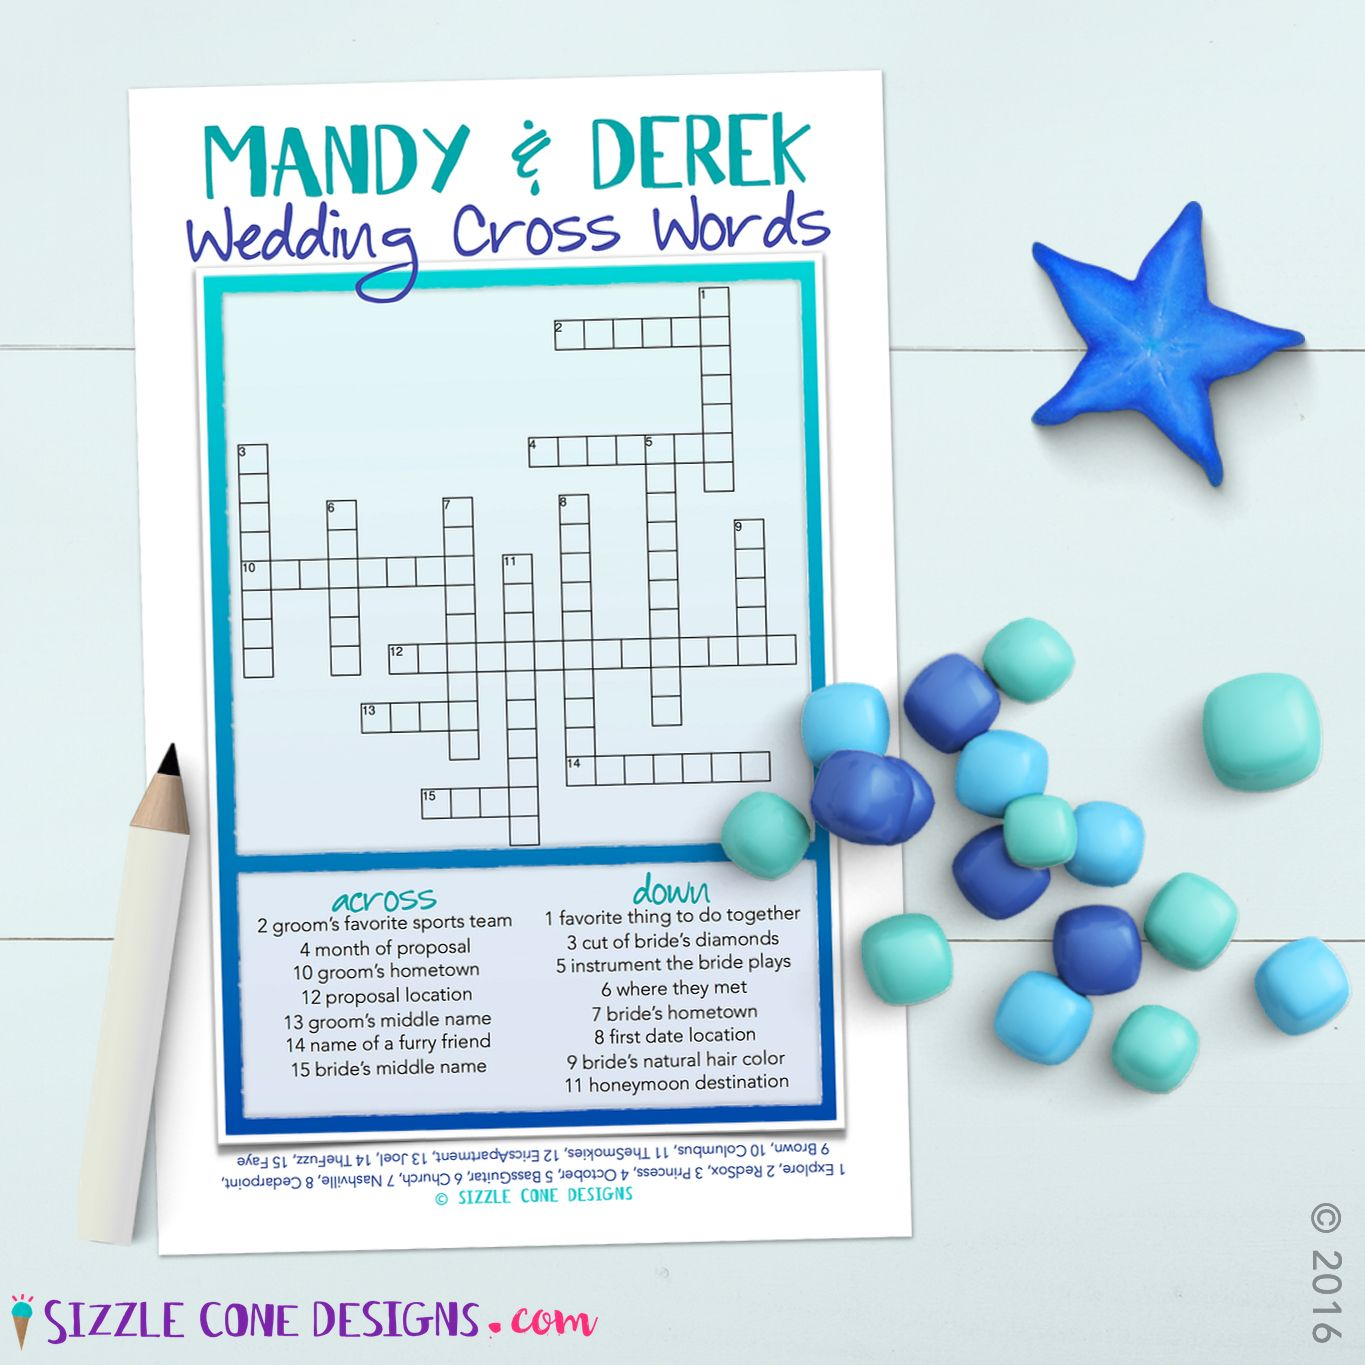 Custom Wedding Crossword Puzzle Cards Printed Or Printable Quiz Your Guest Wedding Crossword Puzzle Wedding Games For Adults Wedding Reception Activities